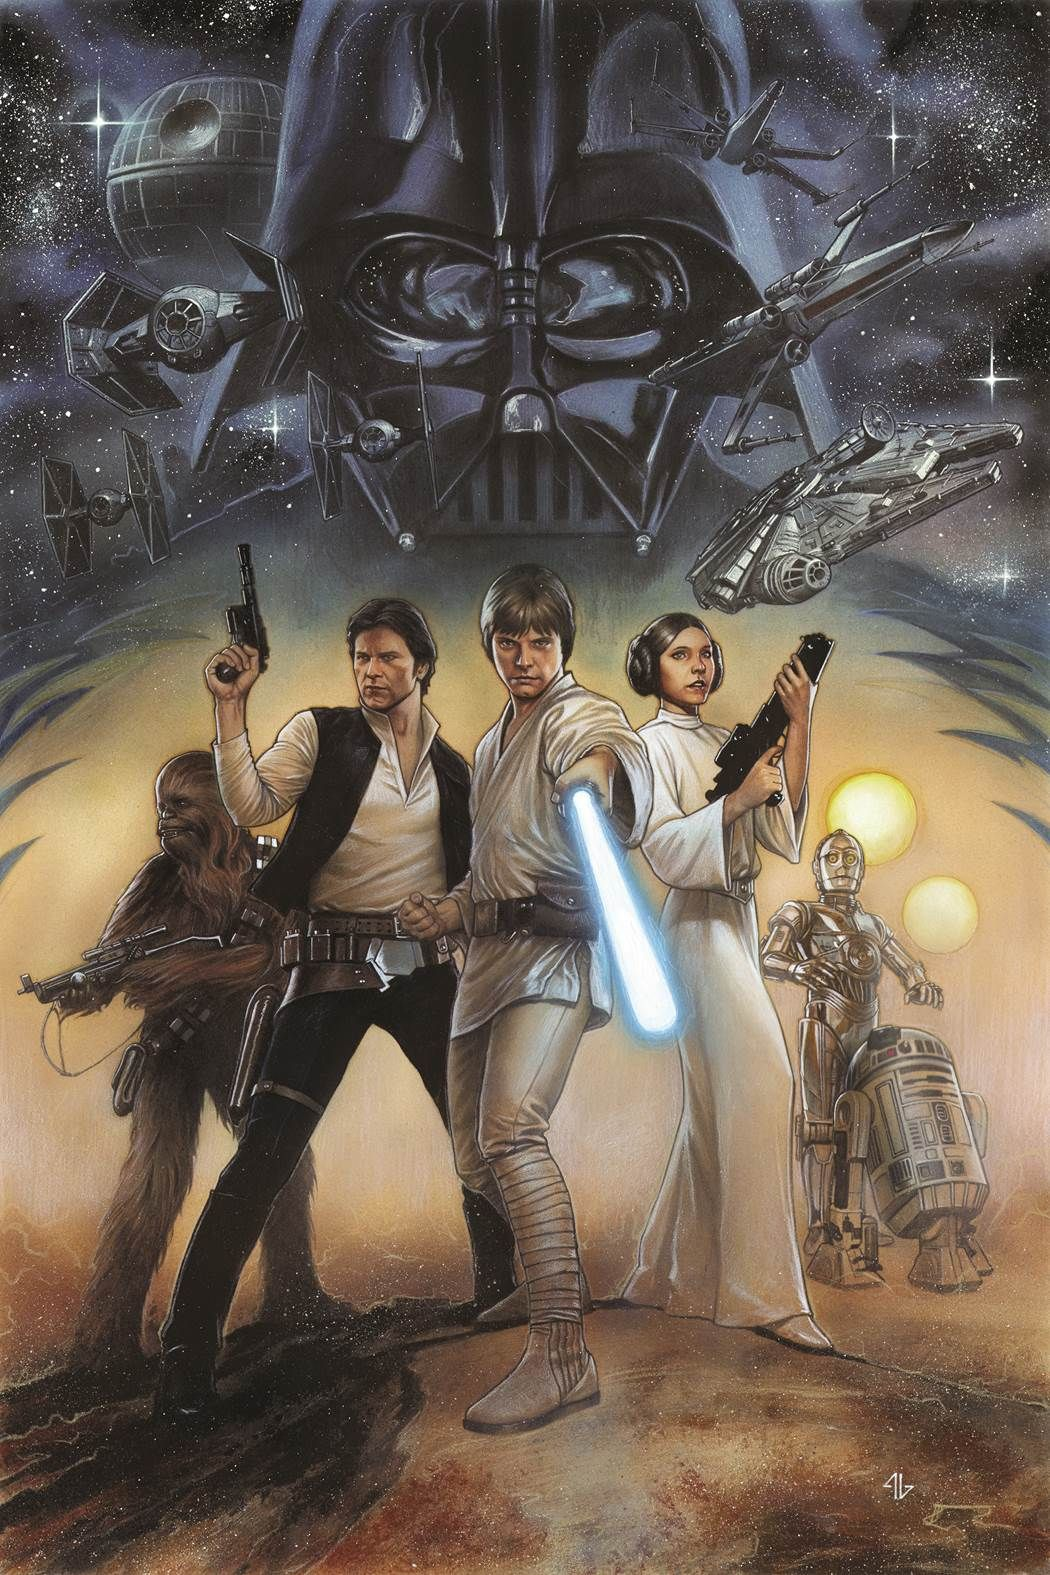 New York, NY – December 16, 2014 – Next year, the original Marvel Comic adaptations of the iconic Star Wars trilogy return for new, oversized graphic novels with remastered coloring! It all starts ...